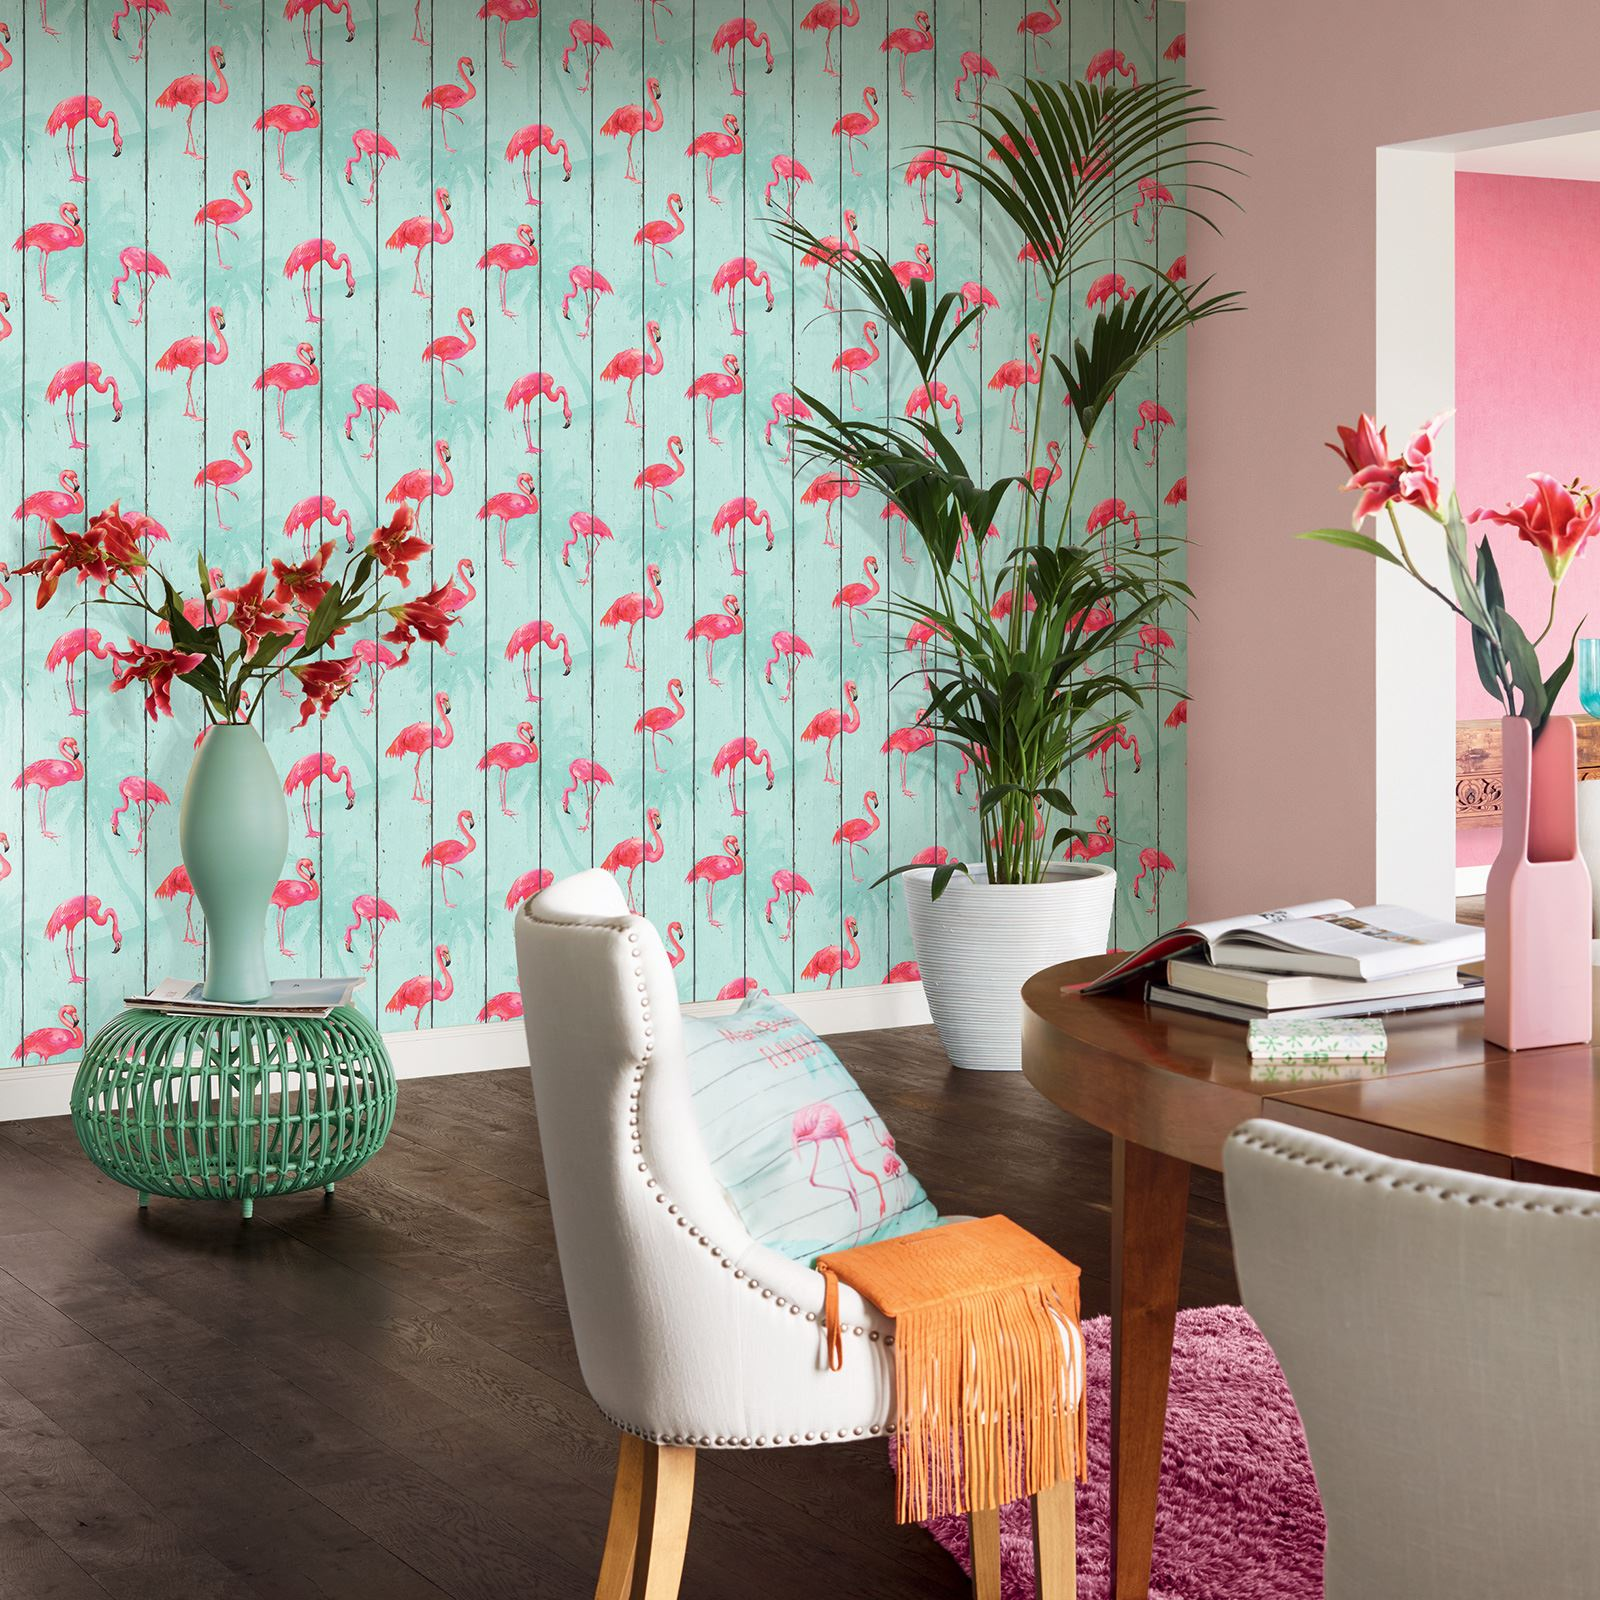 rasch barbara becker flamingo wallpaper teal 479706 wood. Black Bedroom Furniture Sets. Home Design Ideas